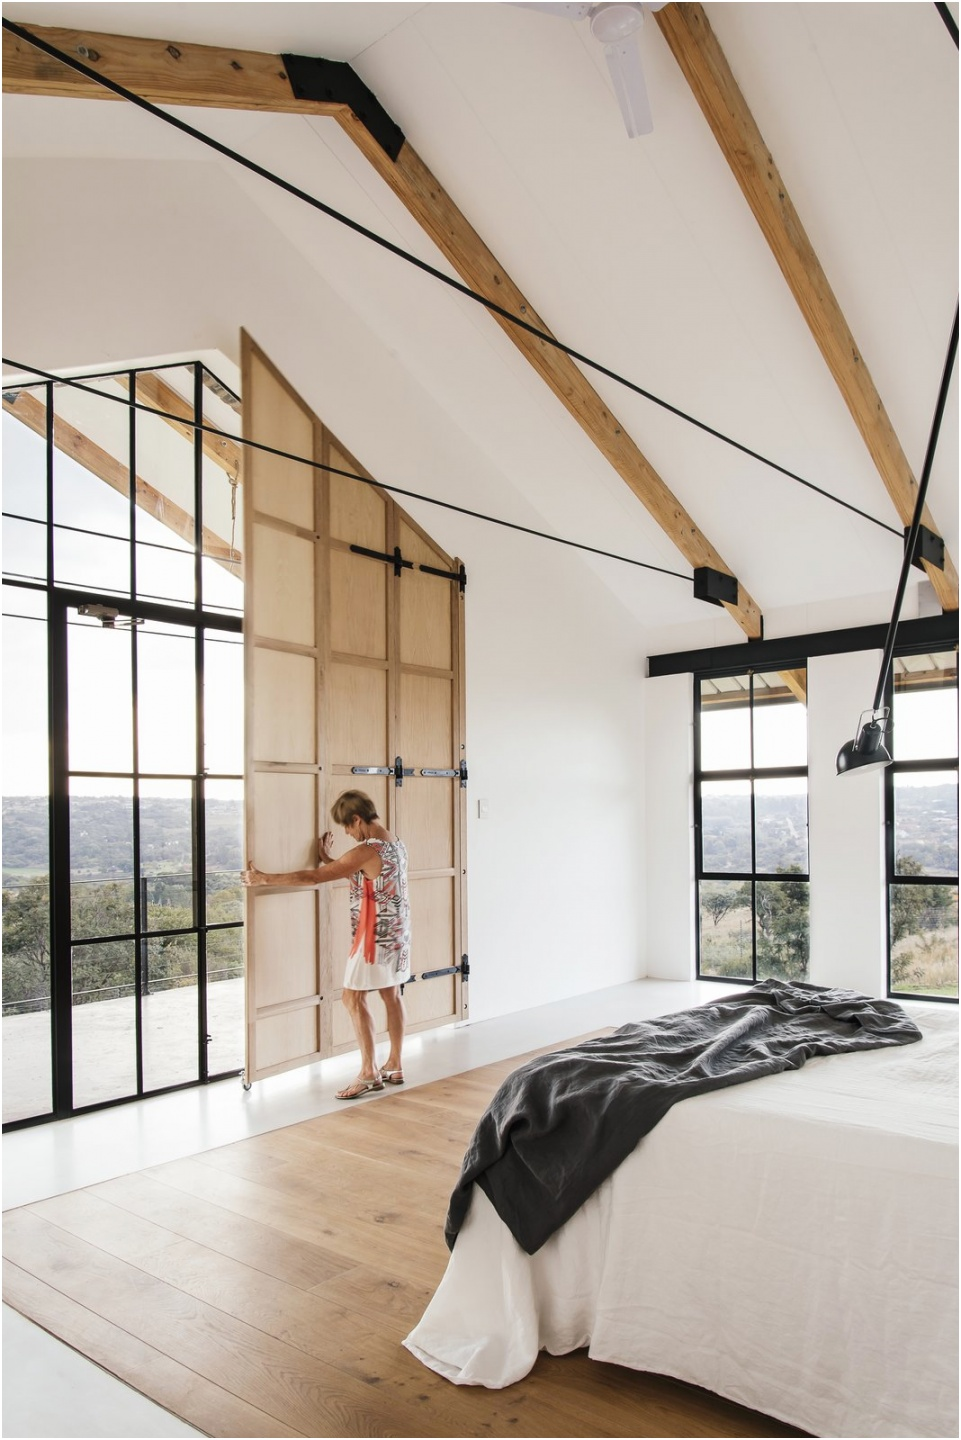 the master bedroom is located on the western side and has a balcony that is well set up for enjoying brilliant sunset views one of our favorite master bedroom lighting ideas for a vaulted ceiling is to suspend task lighting from the rafters seen here in t